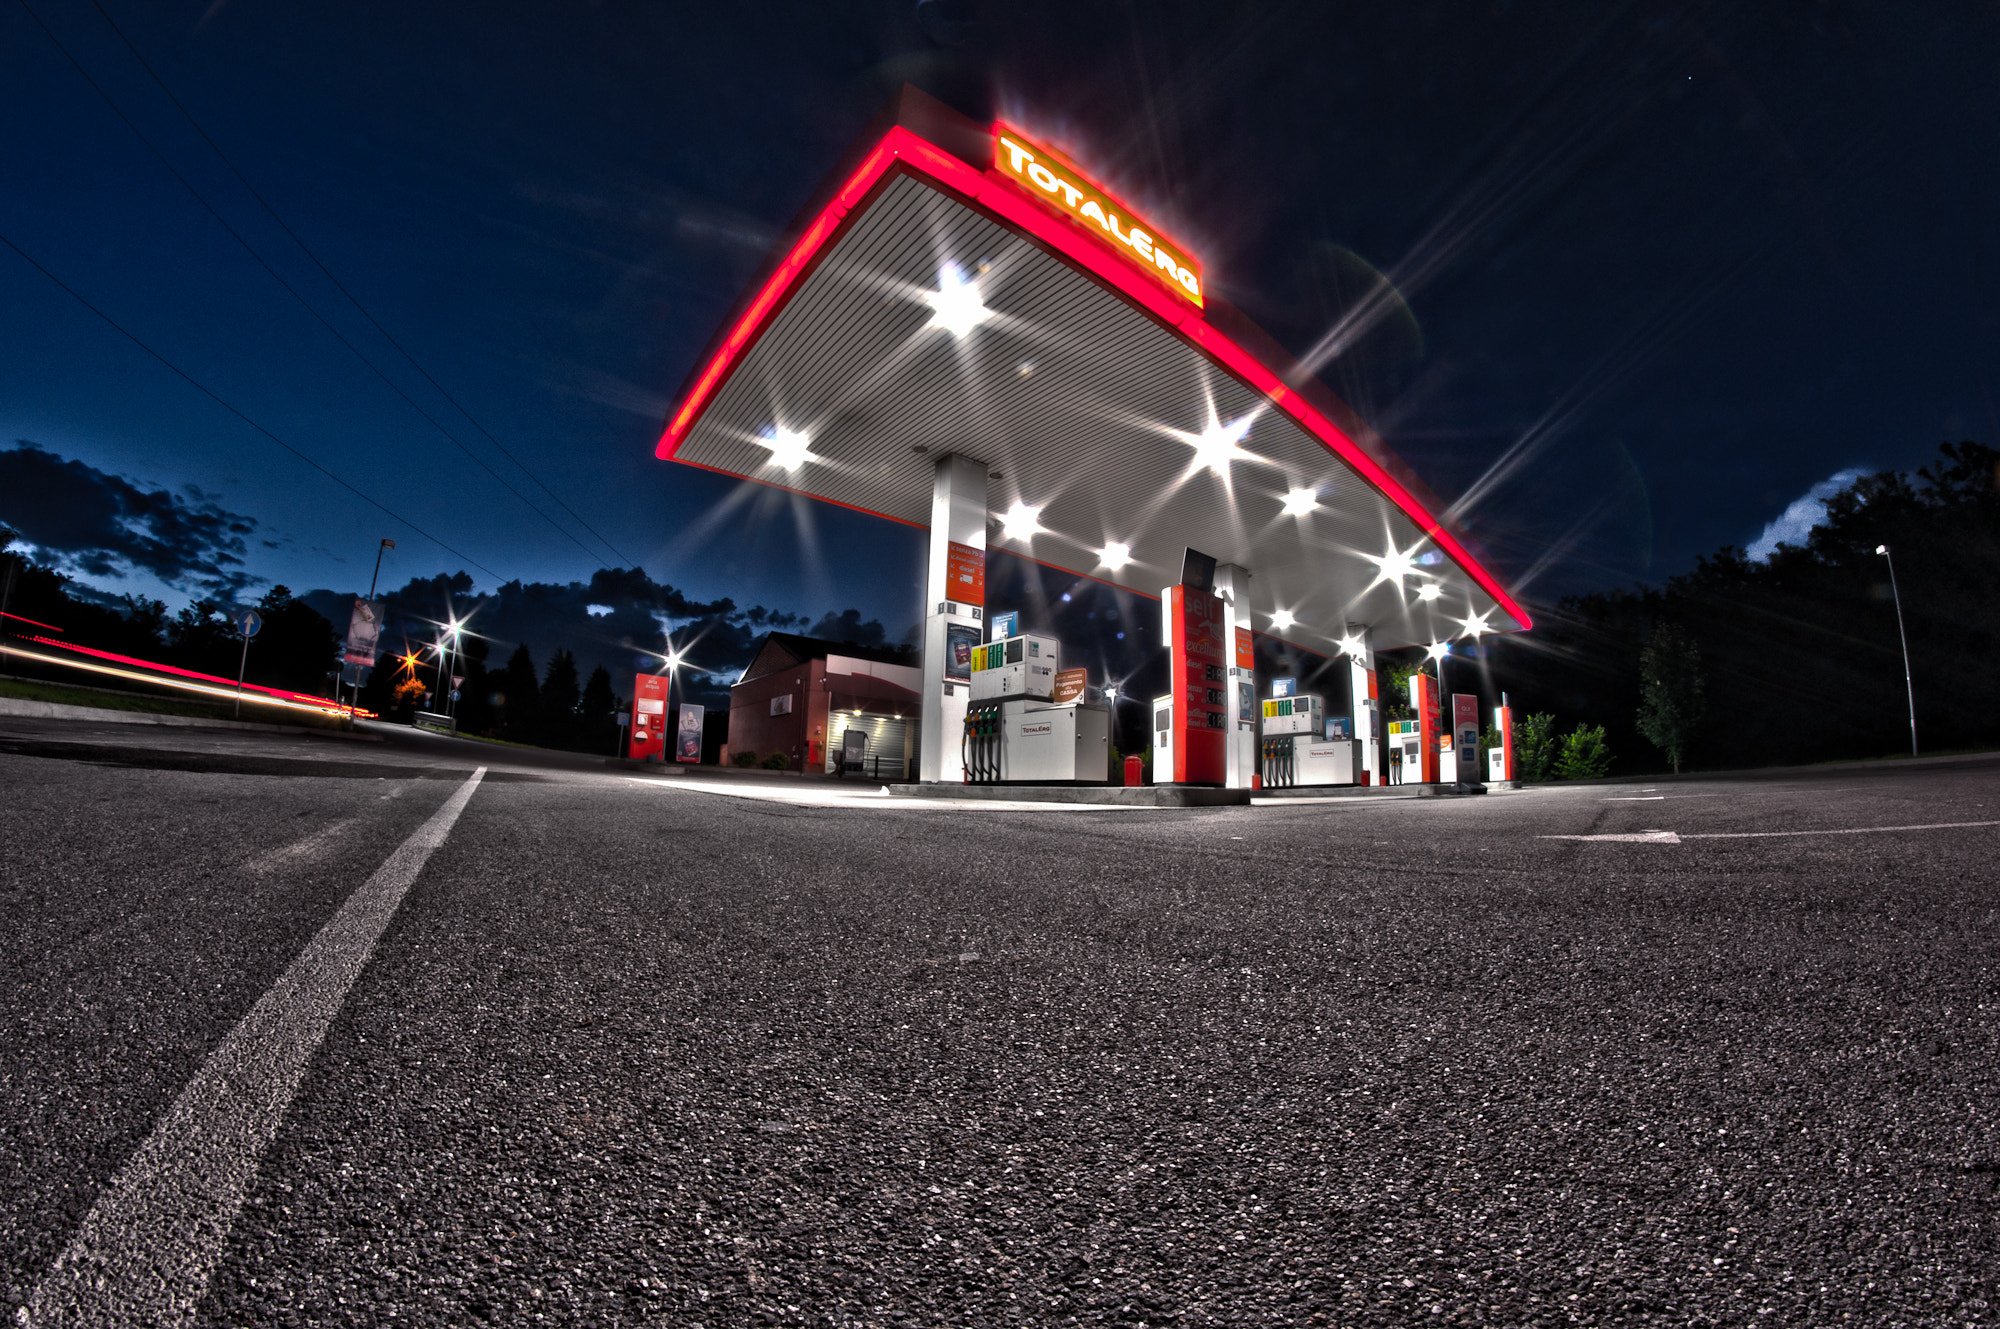 Photograph Petrol in the night by Mattia Marchiorato on 500px